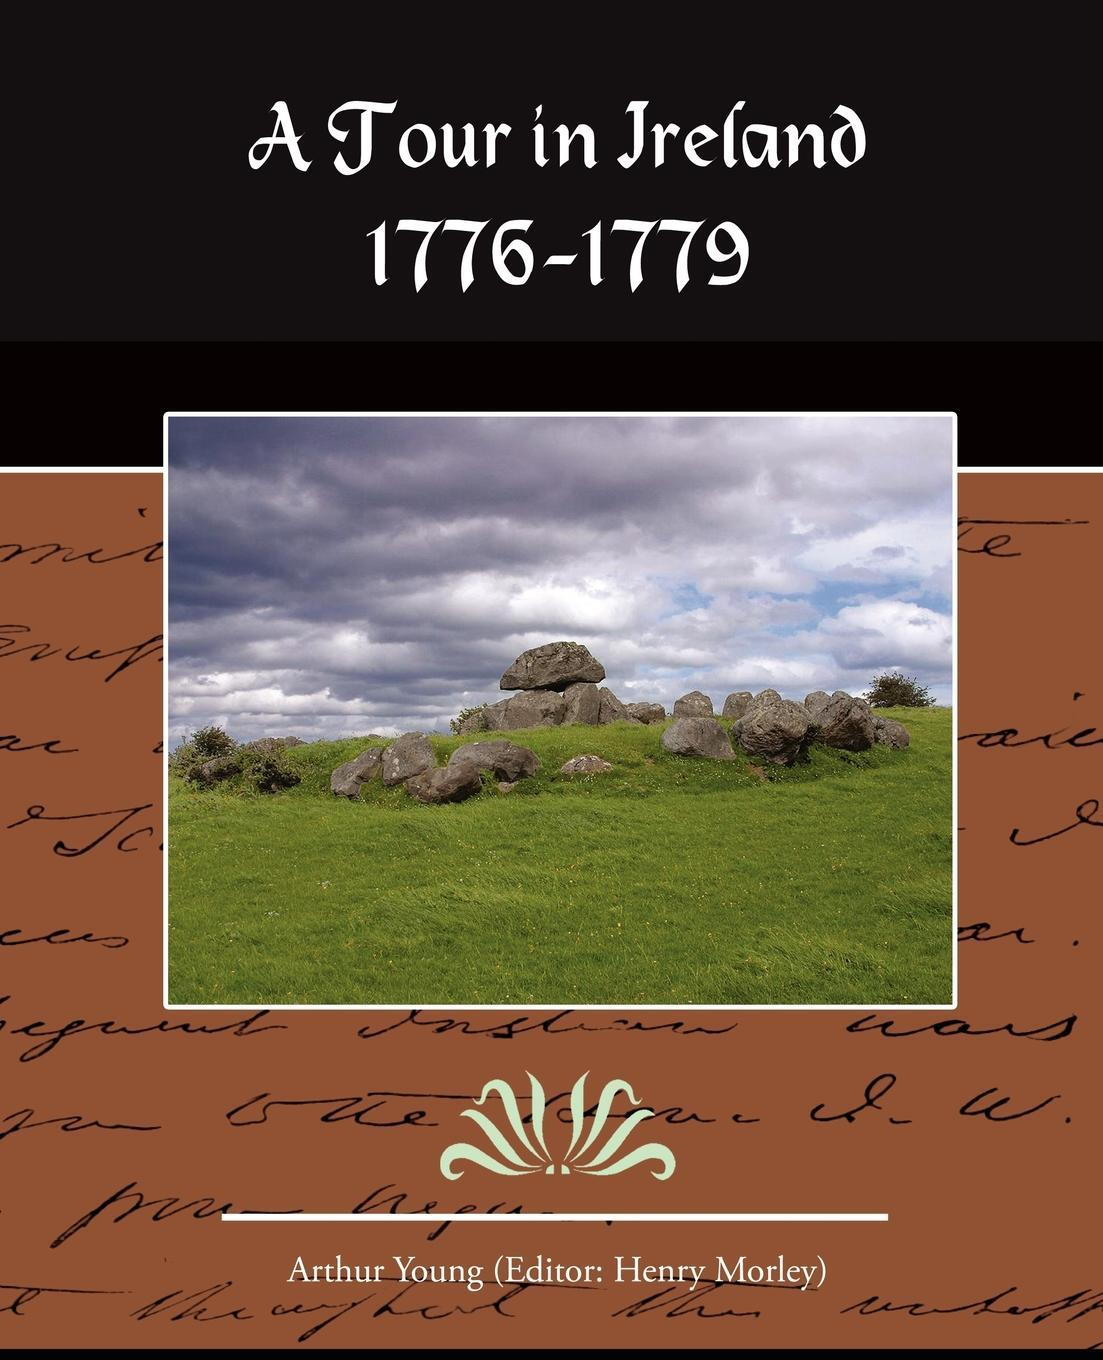 A Tour in Ireland 1776-1779